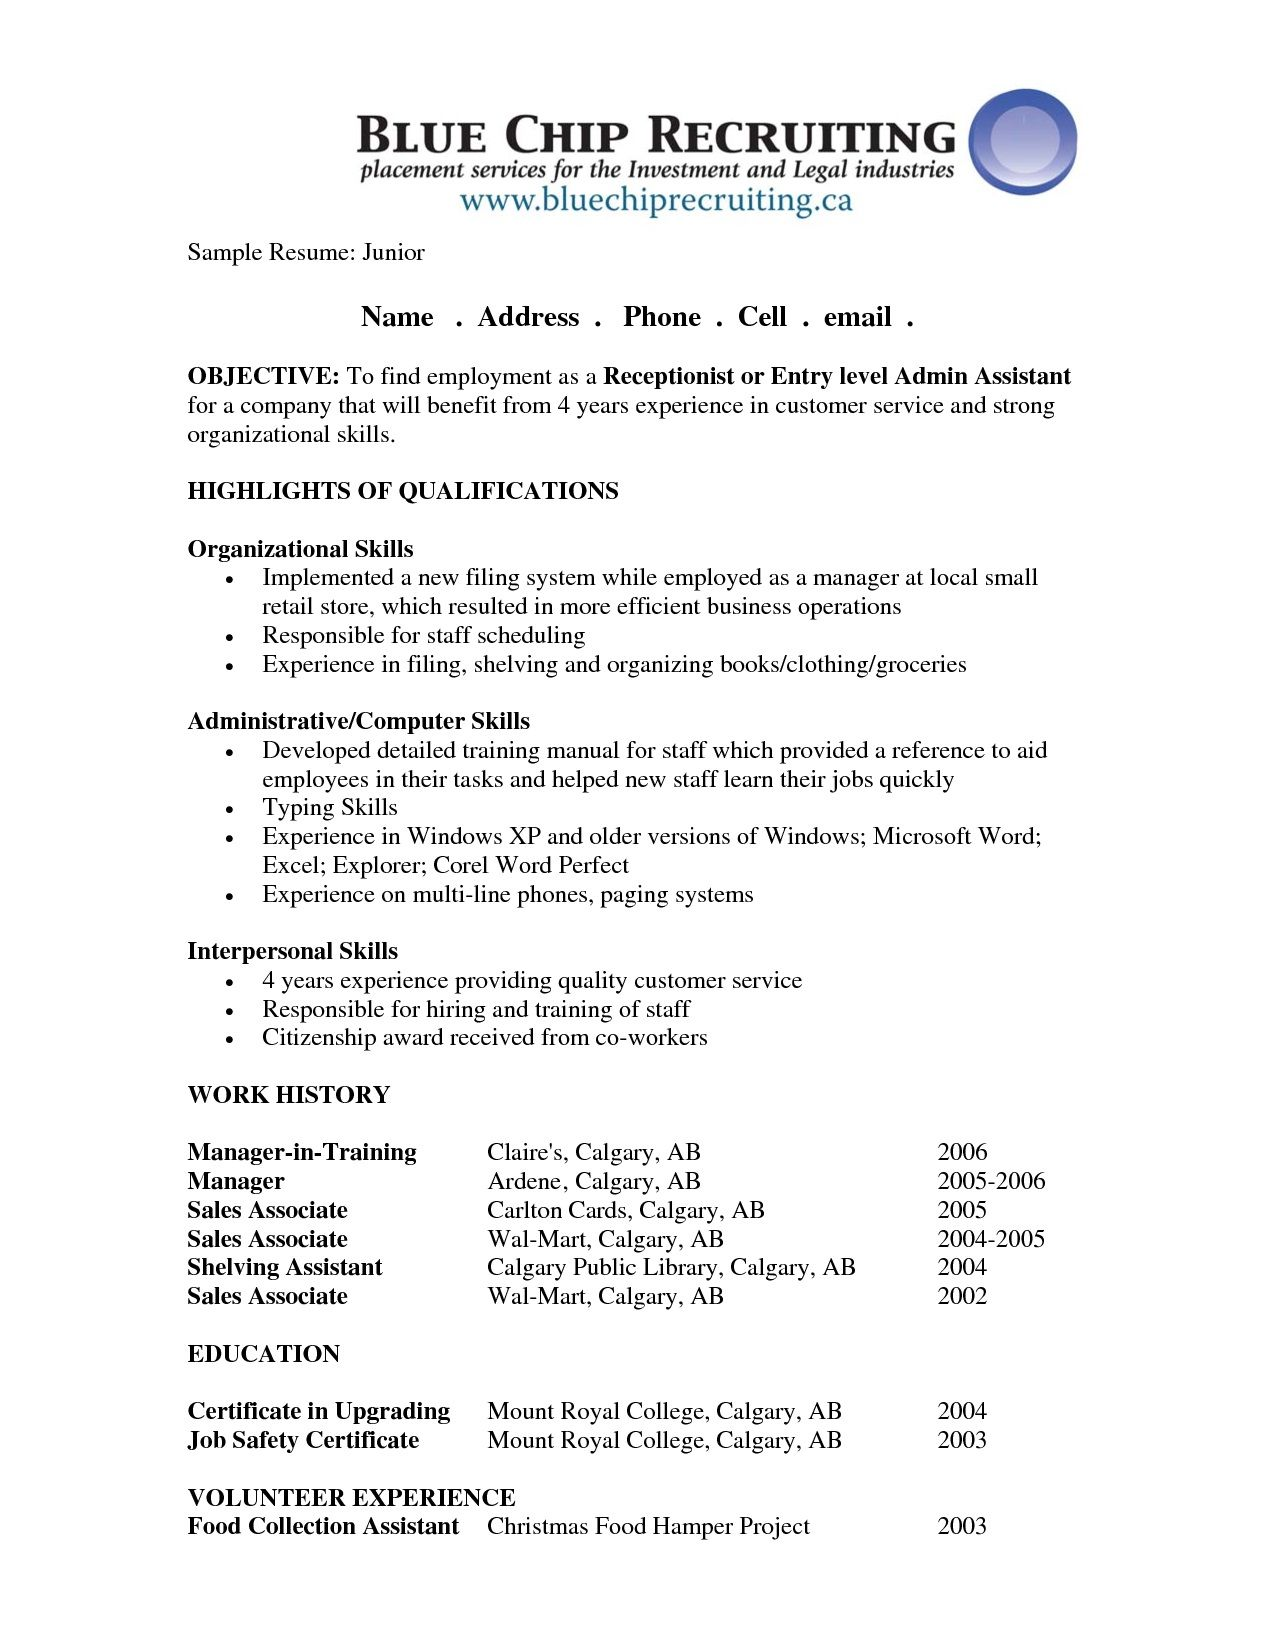 Receptionist Resume Objective Sample (With images) Good